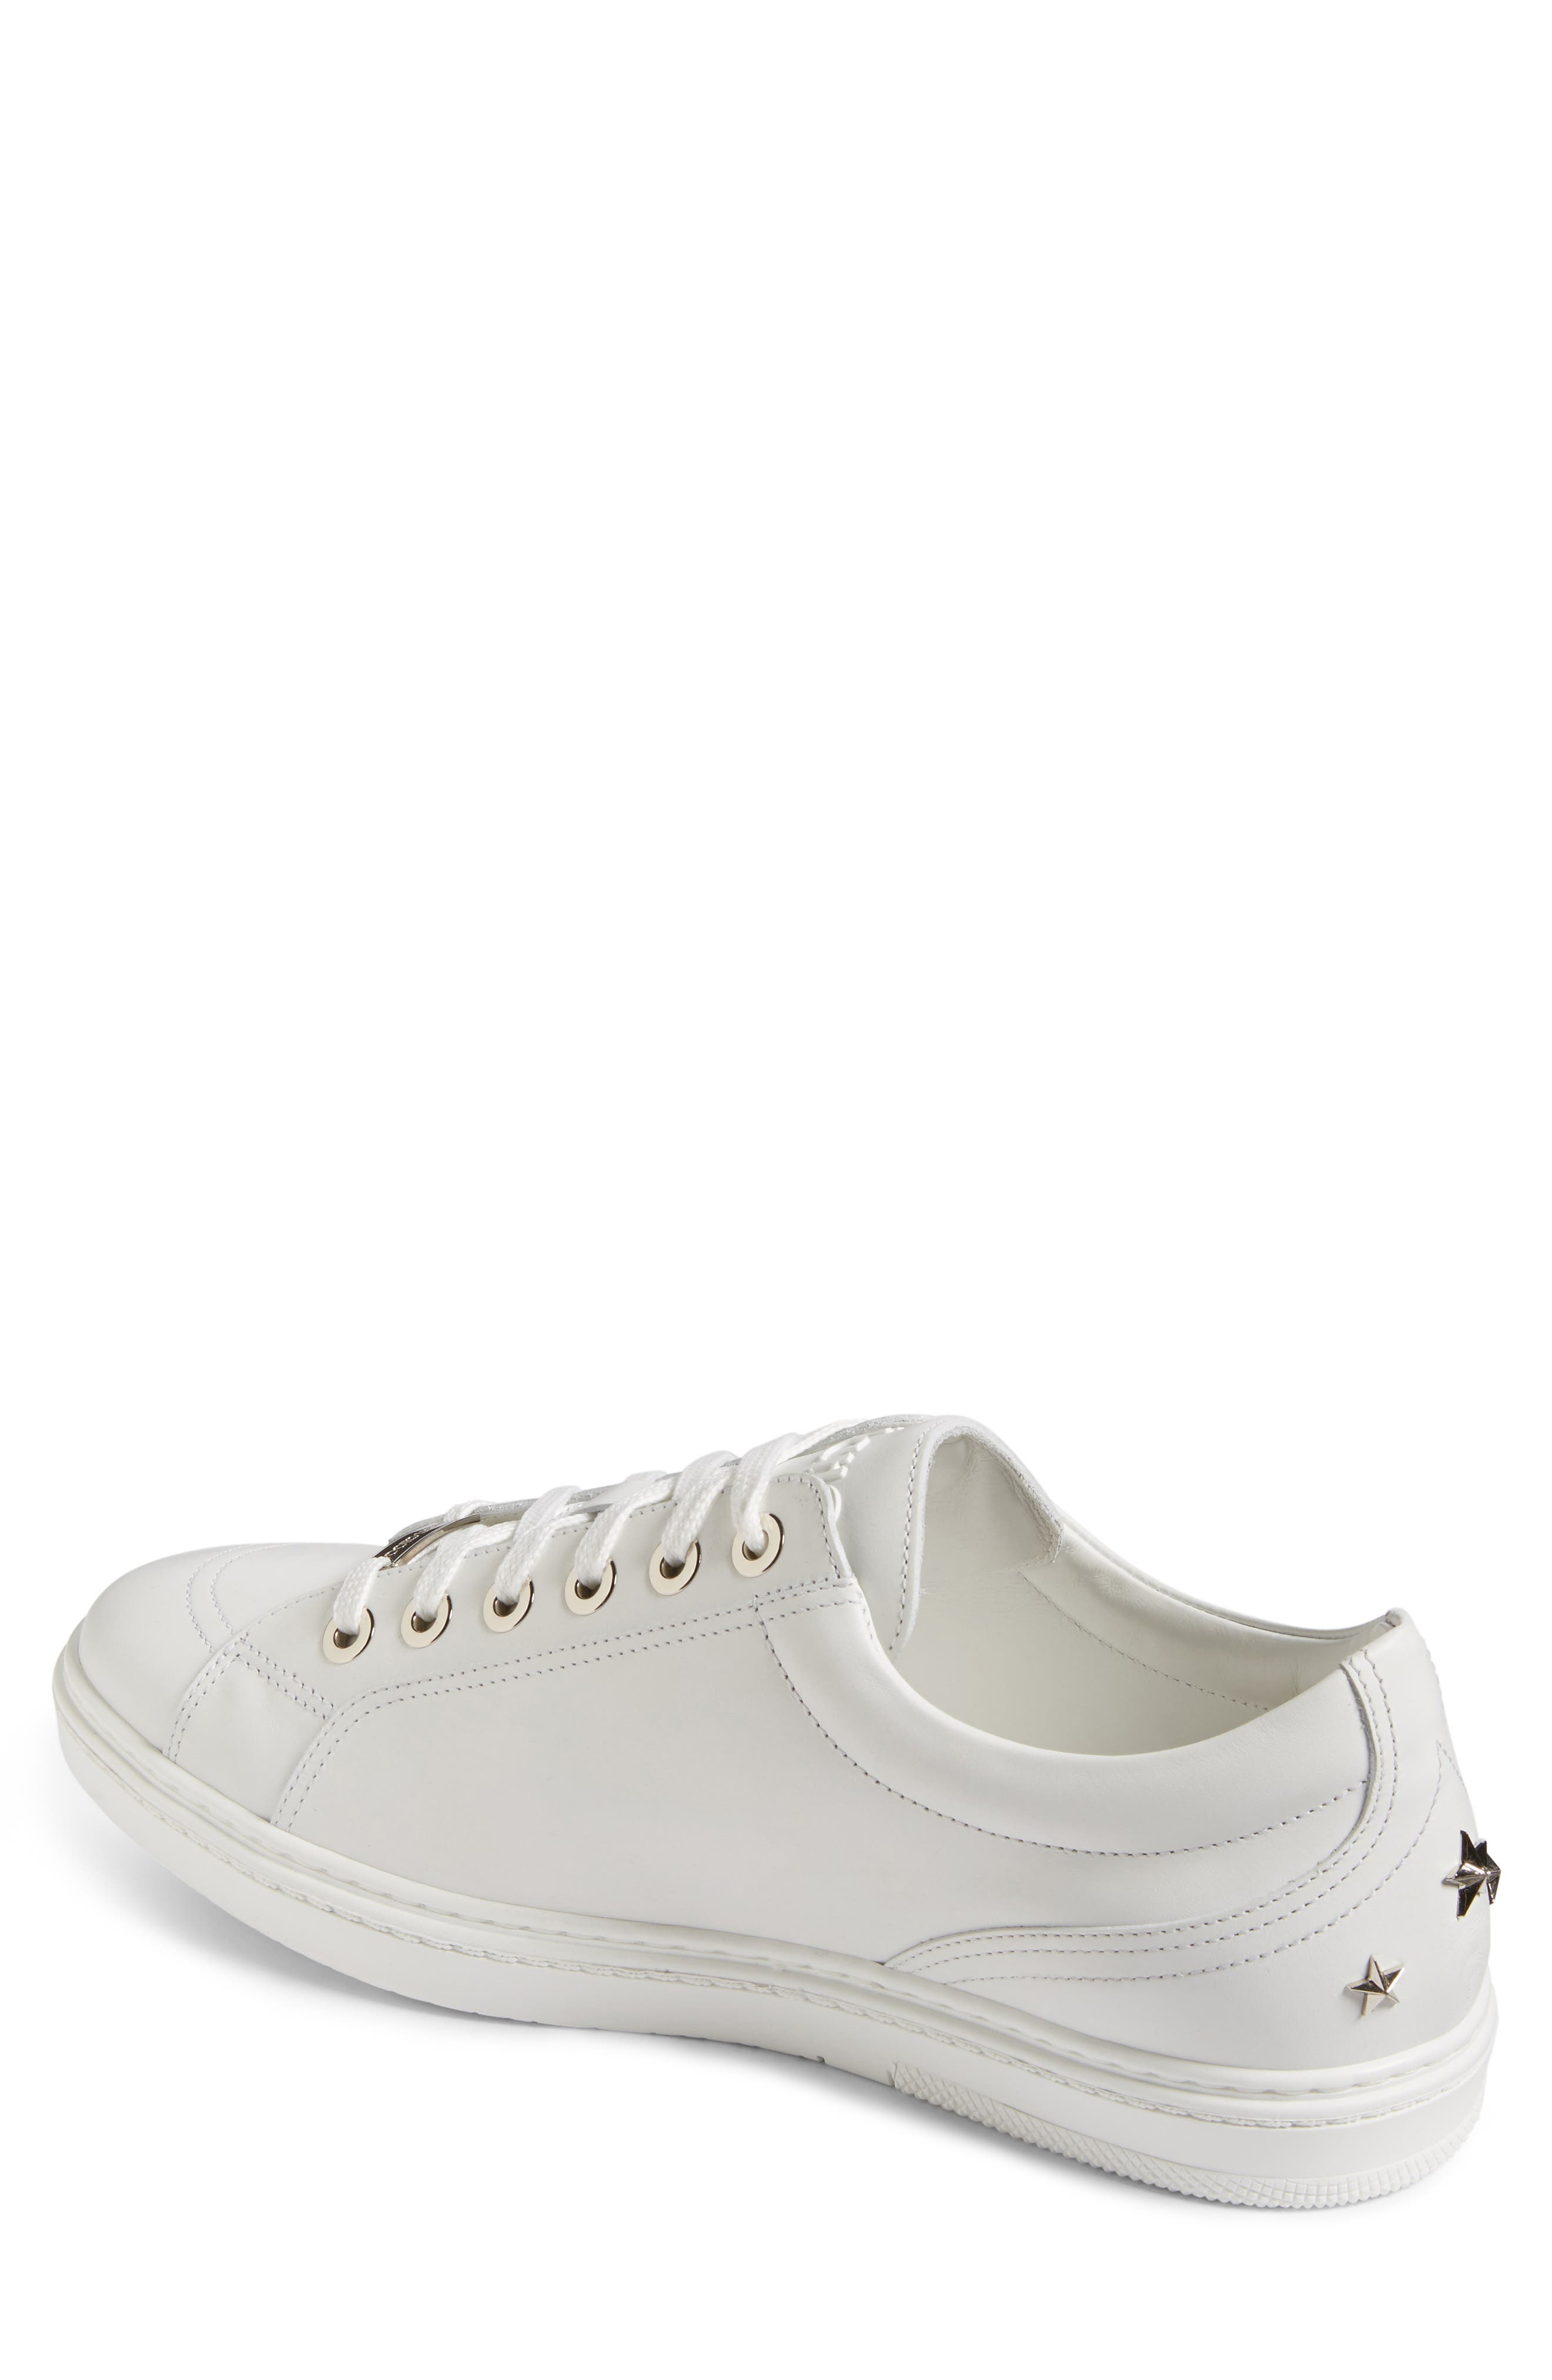 Cash Star Sneaker,                             Alternate thumbnail 2, color,                             Ultra White